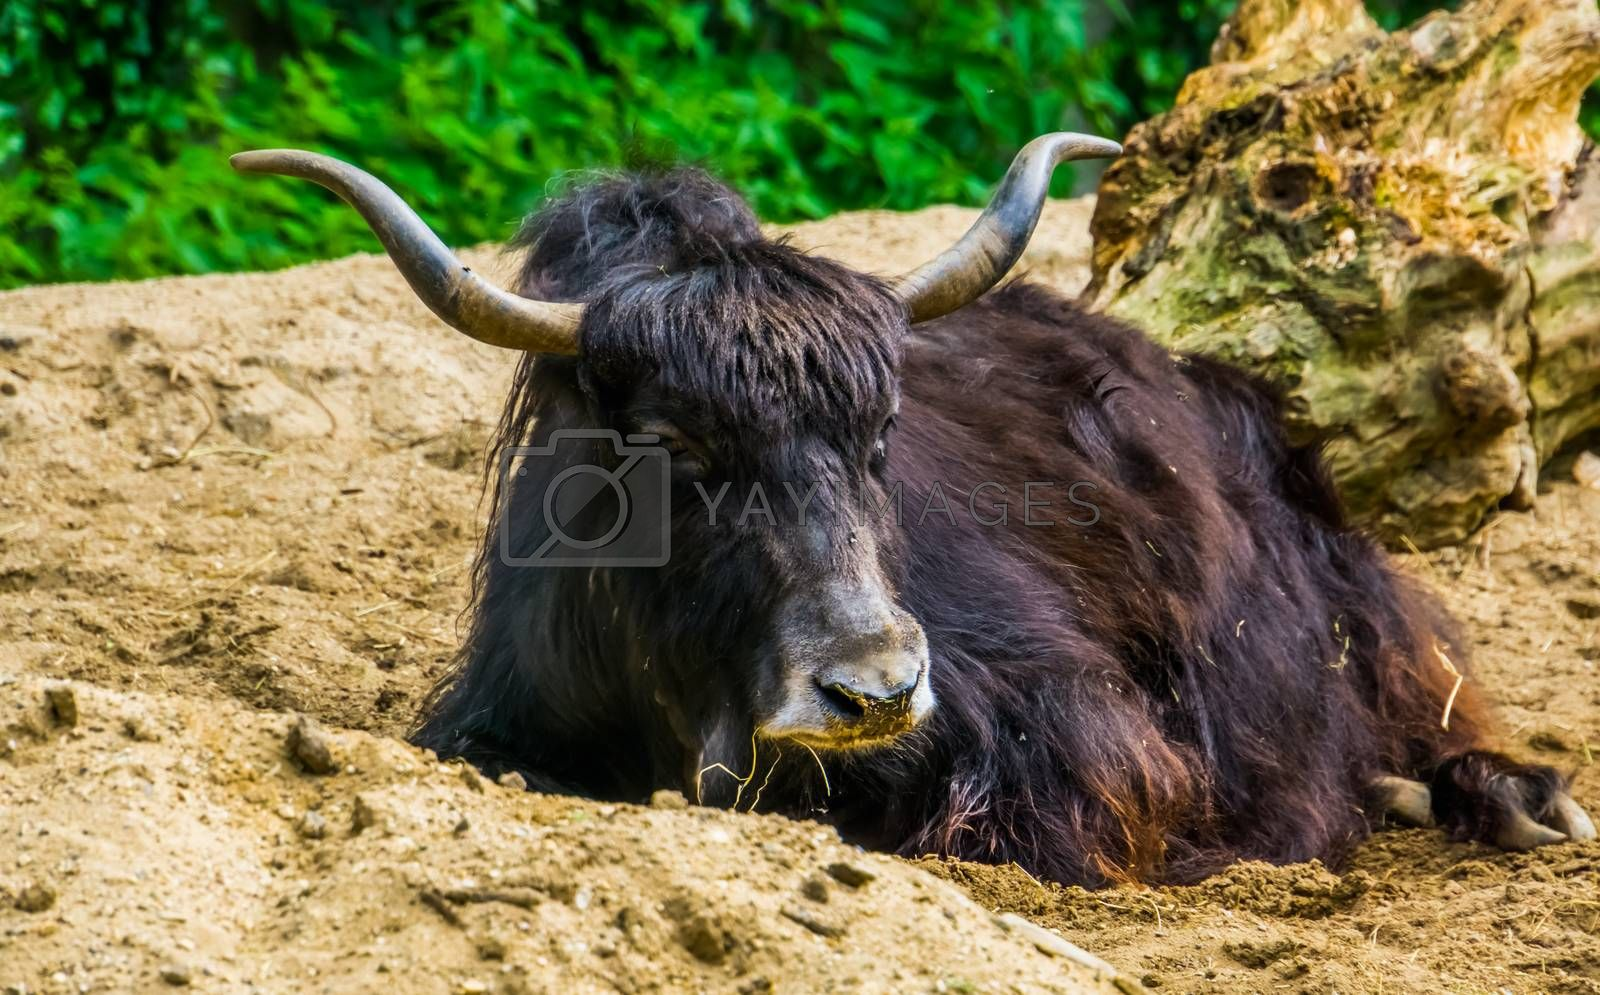 wild yak laying on the ground in closeup, tropical cattle specie from the himalayas of Asia